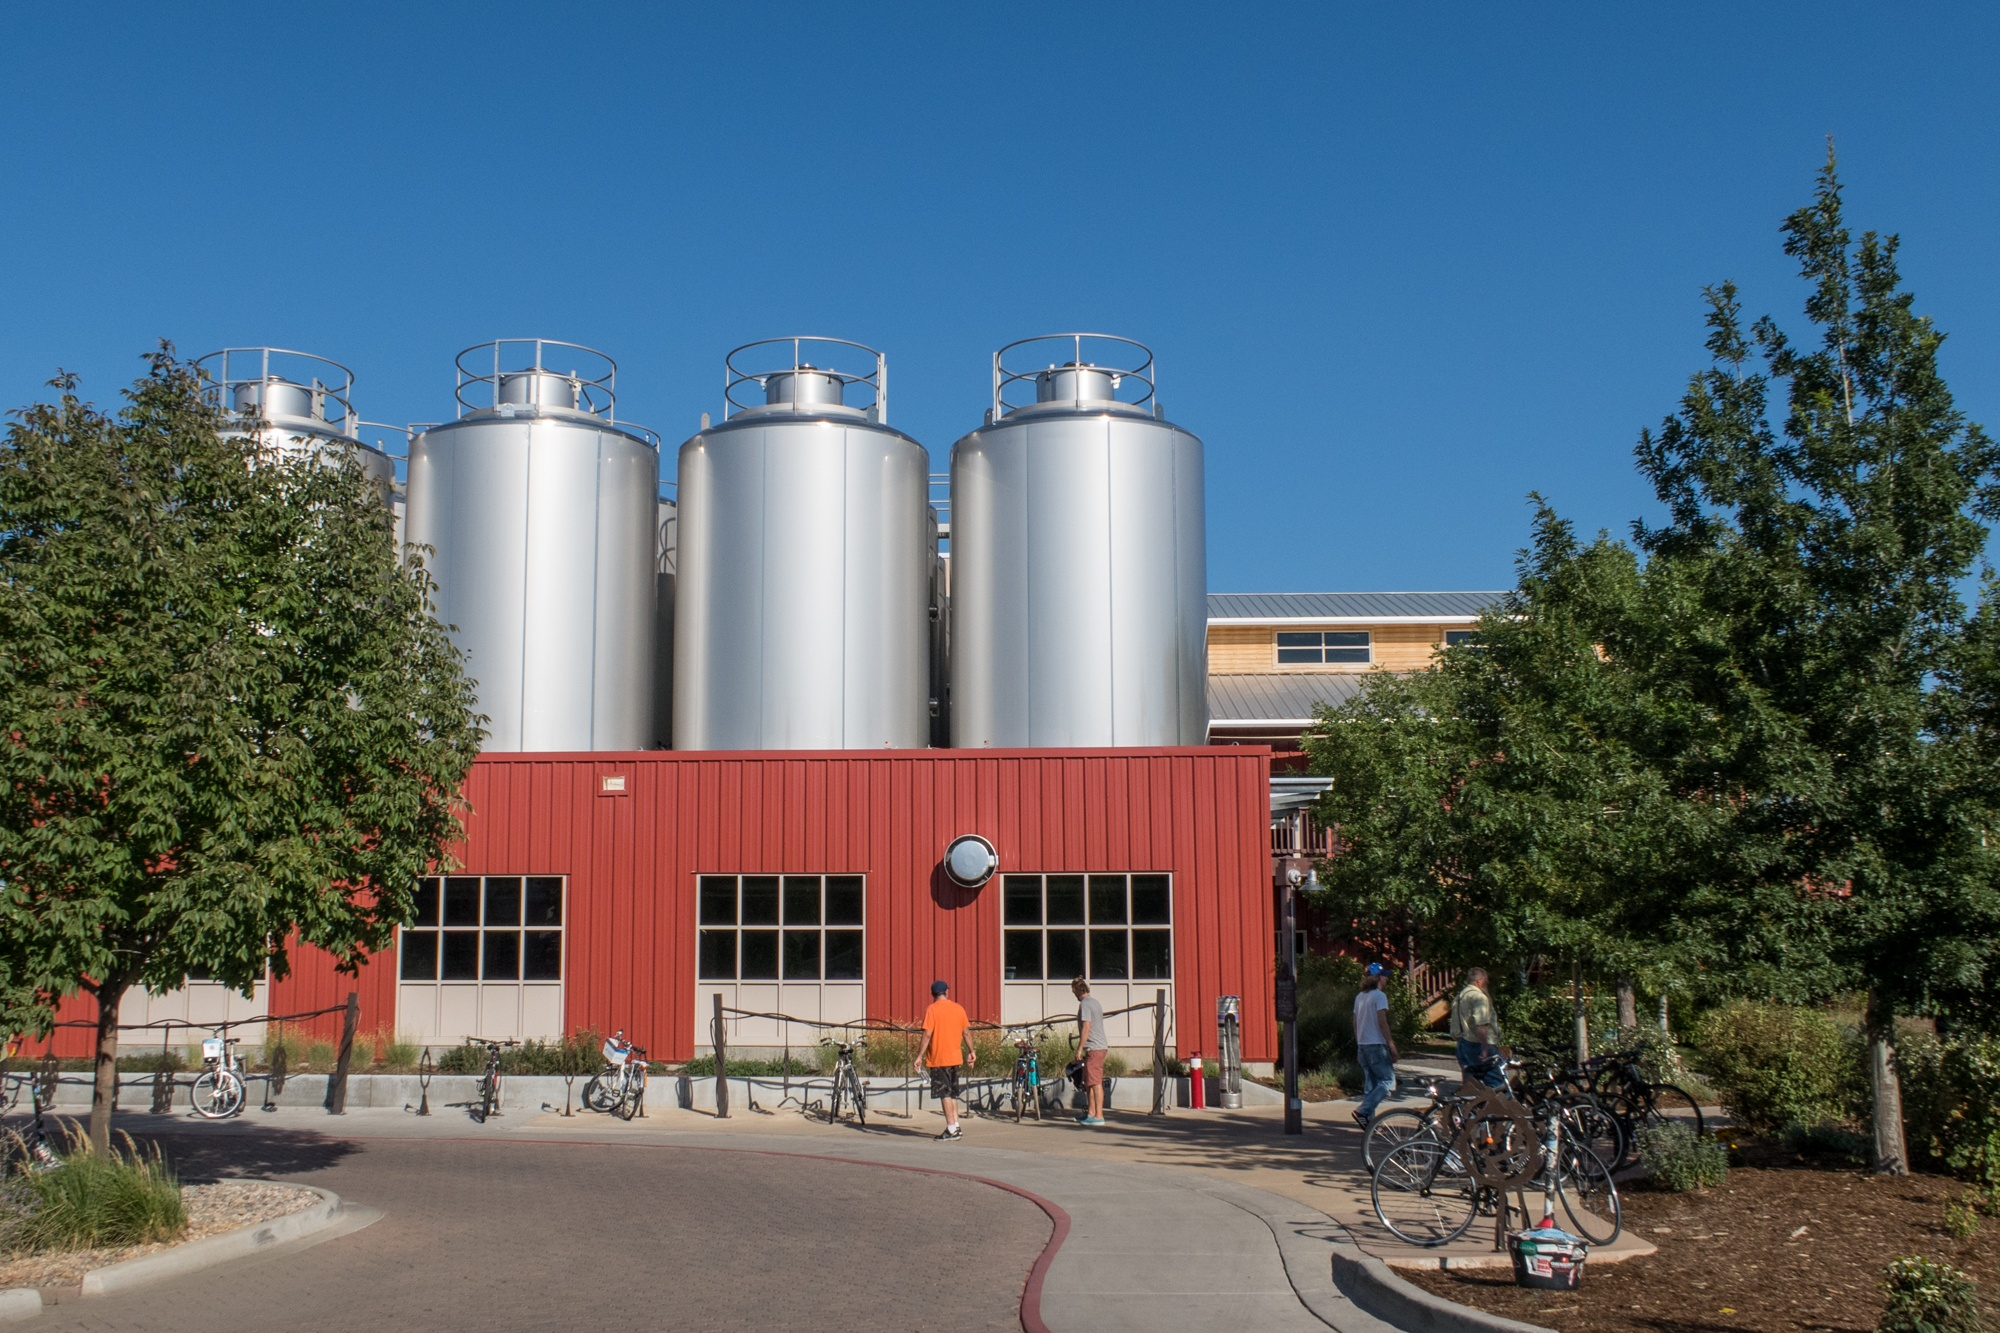 Entrance to Odell Brewing Co., the first stop on my Fort Collins beer and bike tour